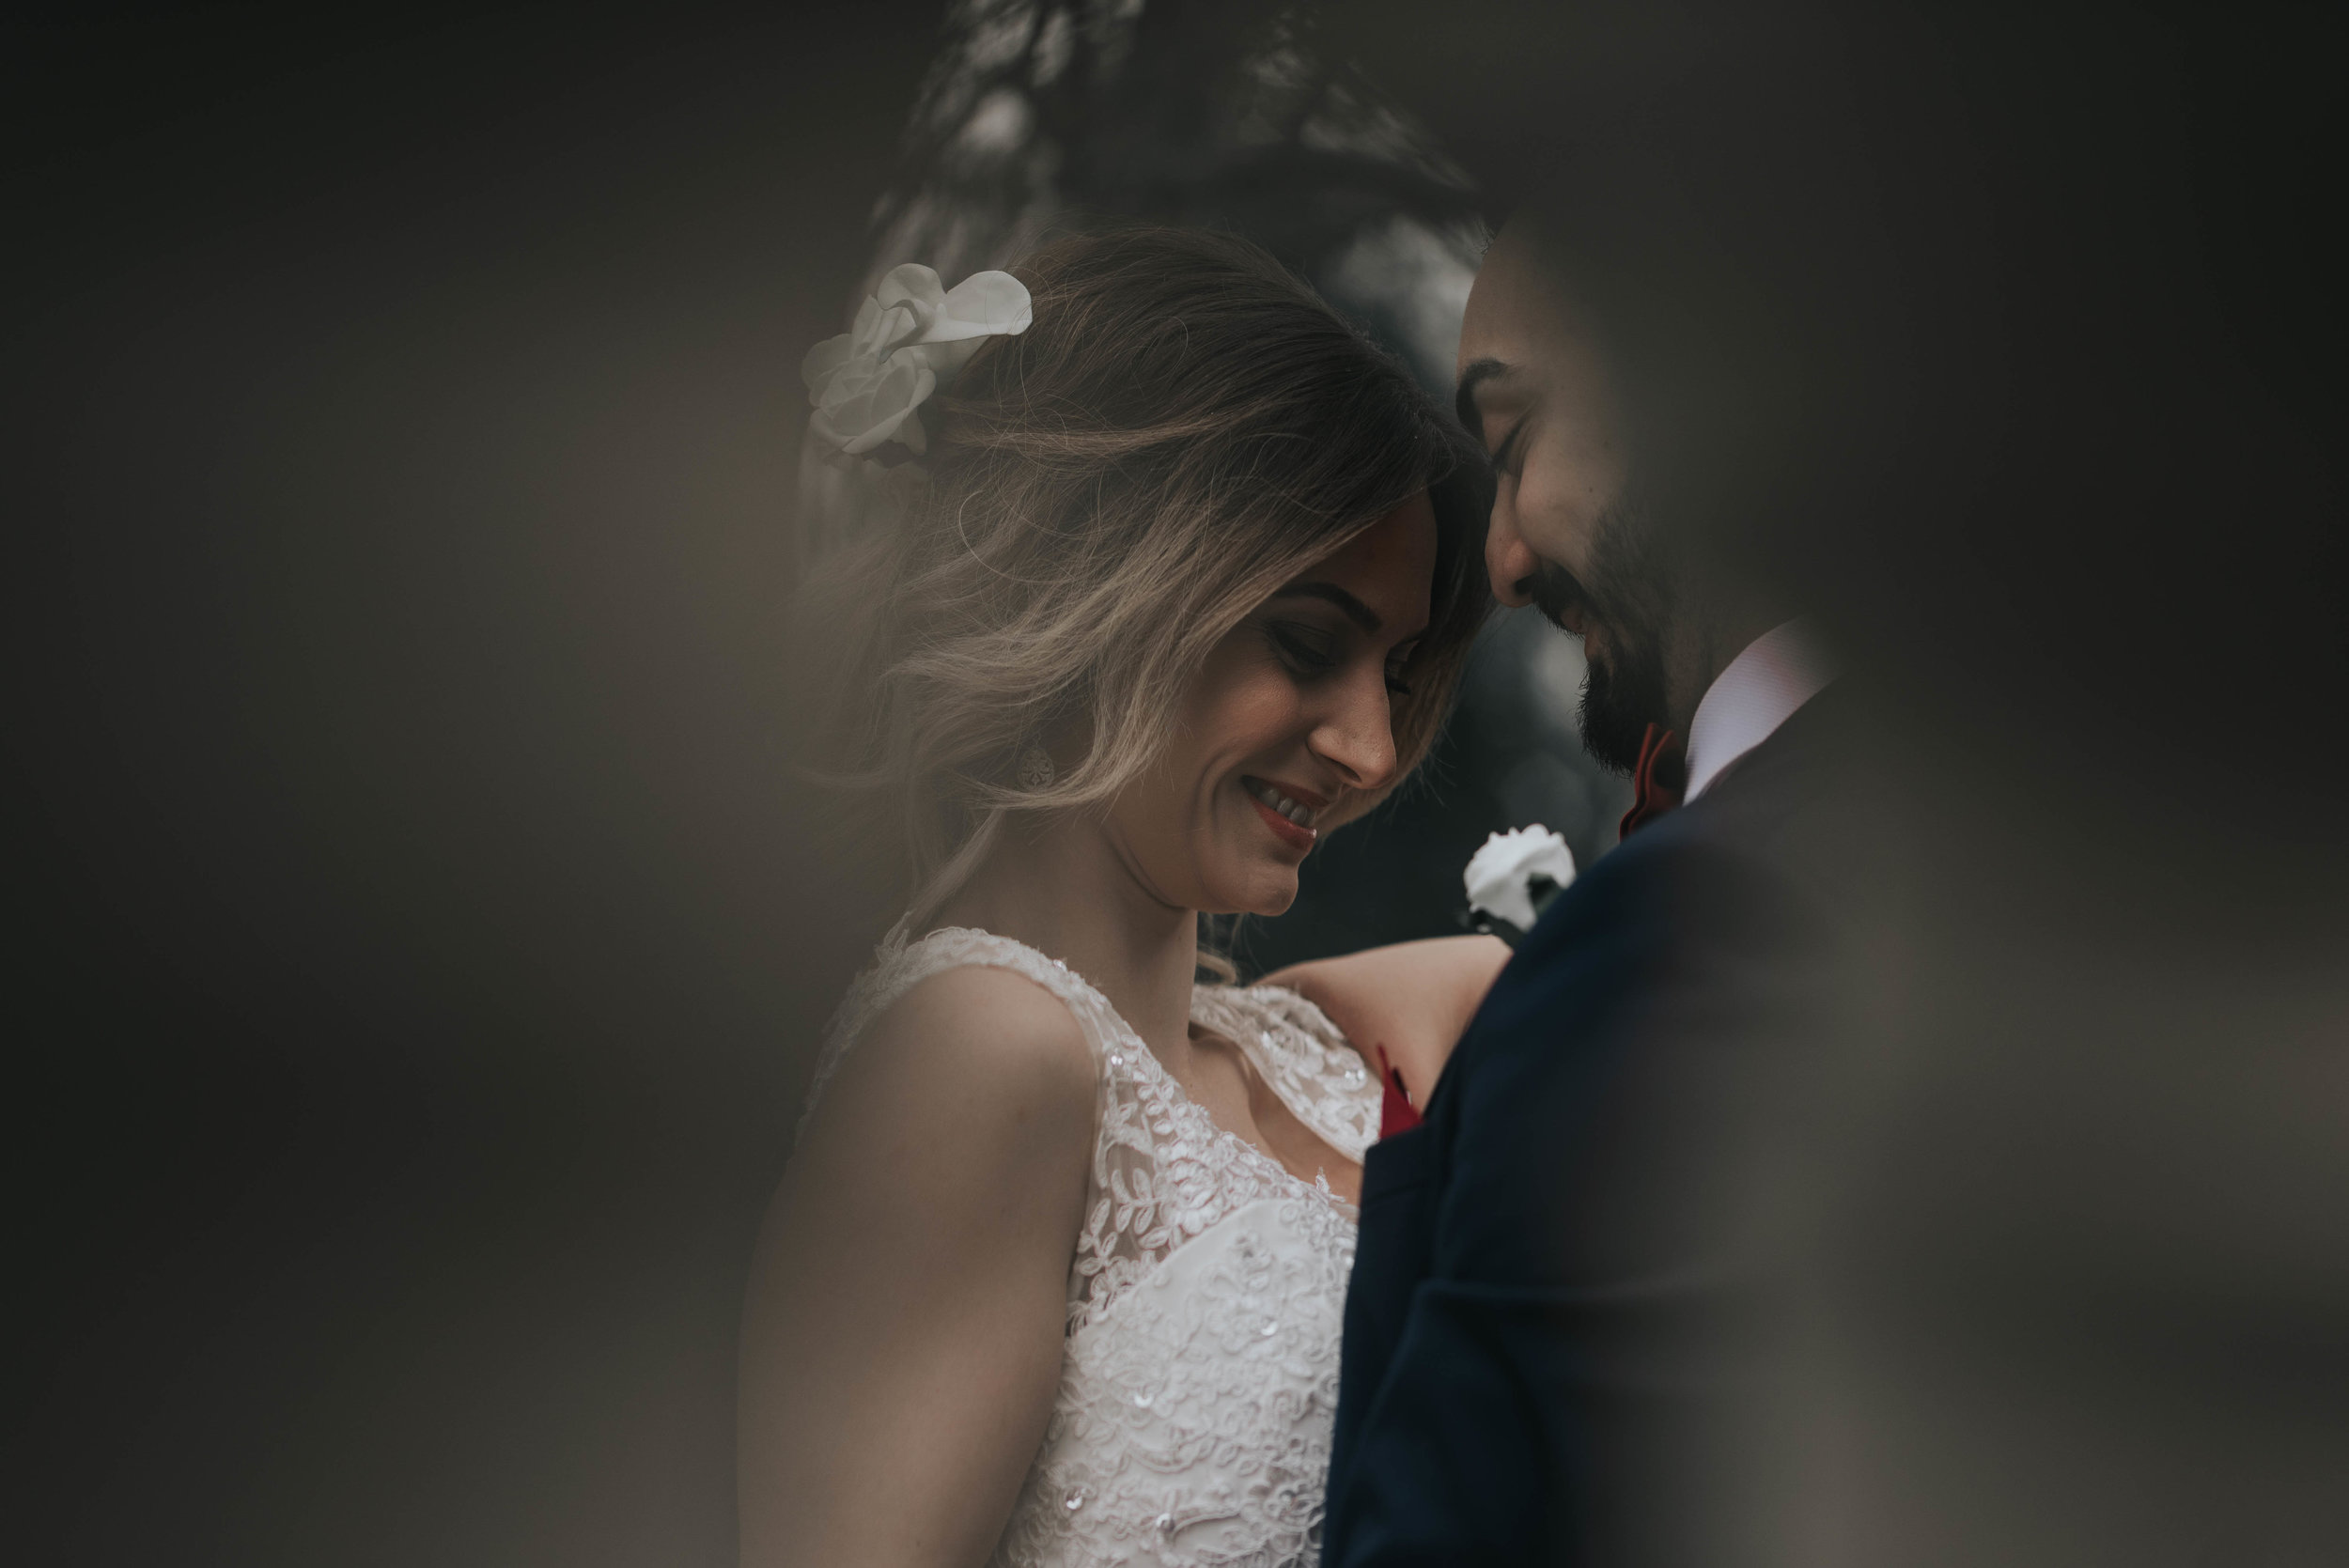 bride and groom have a cheeky giggle together, outside with the soft sunlight lighting their faces